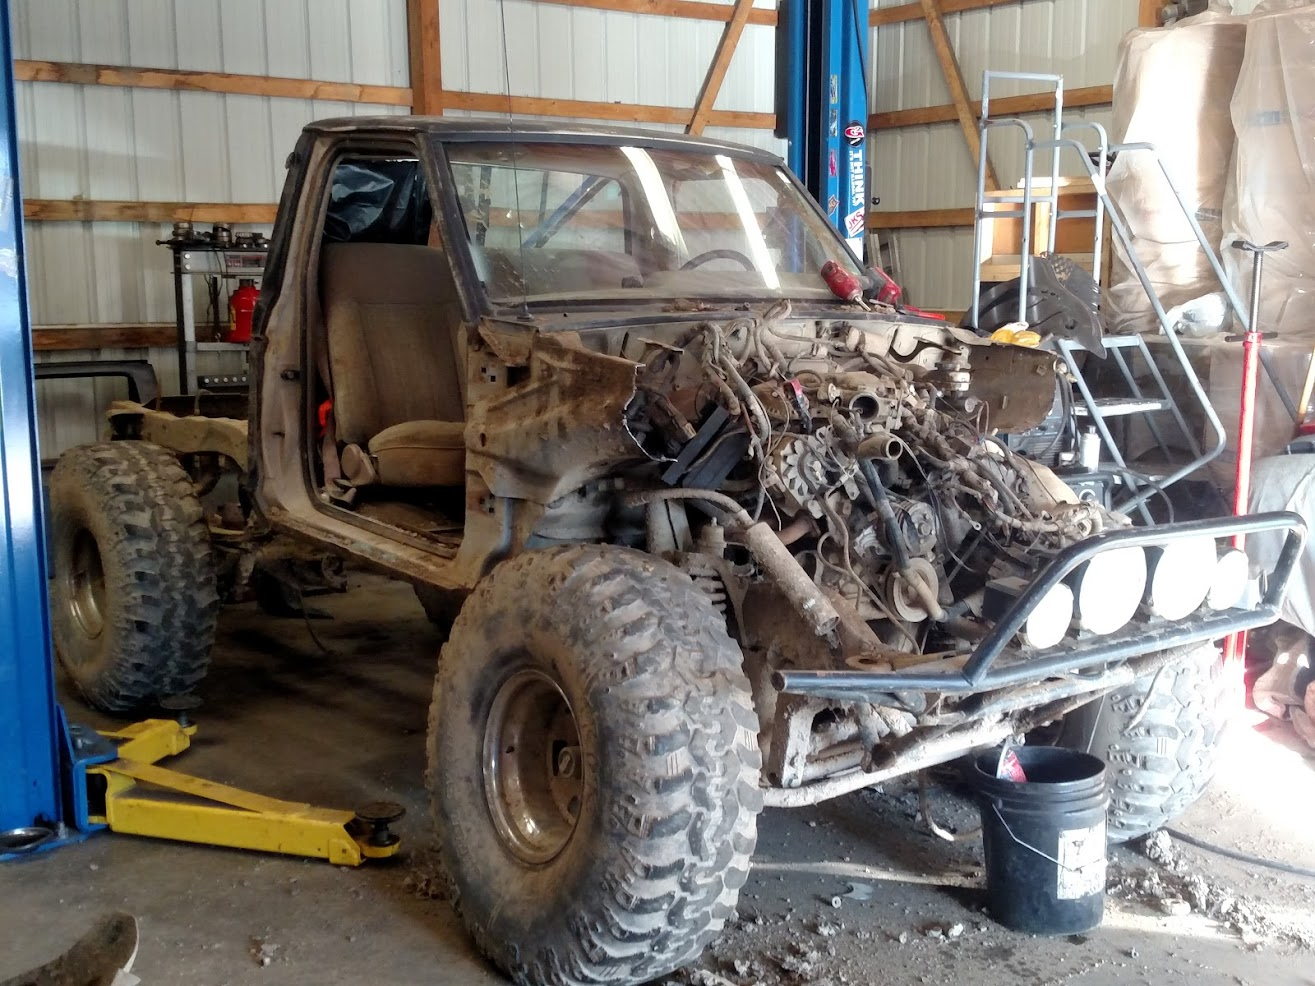 For the last 2 years its been our mega truck bronco that this bronco 2 is the mini me of so the first day of hell week we tore apart the ranger